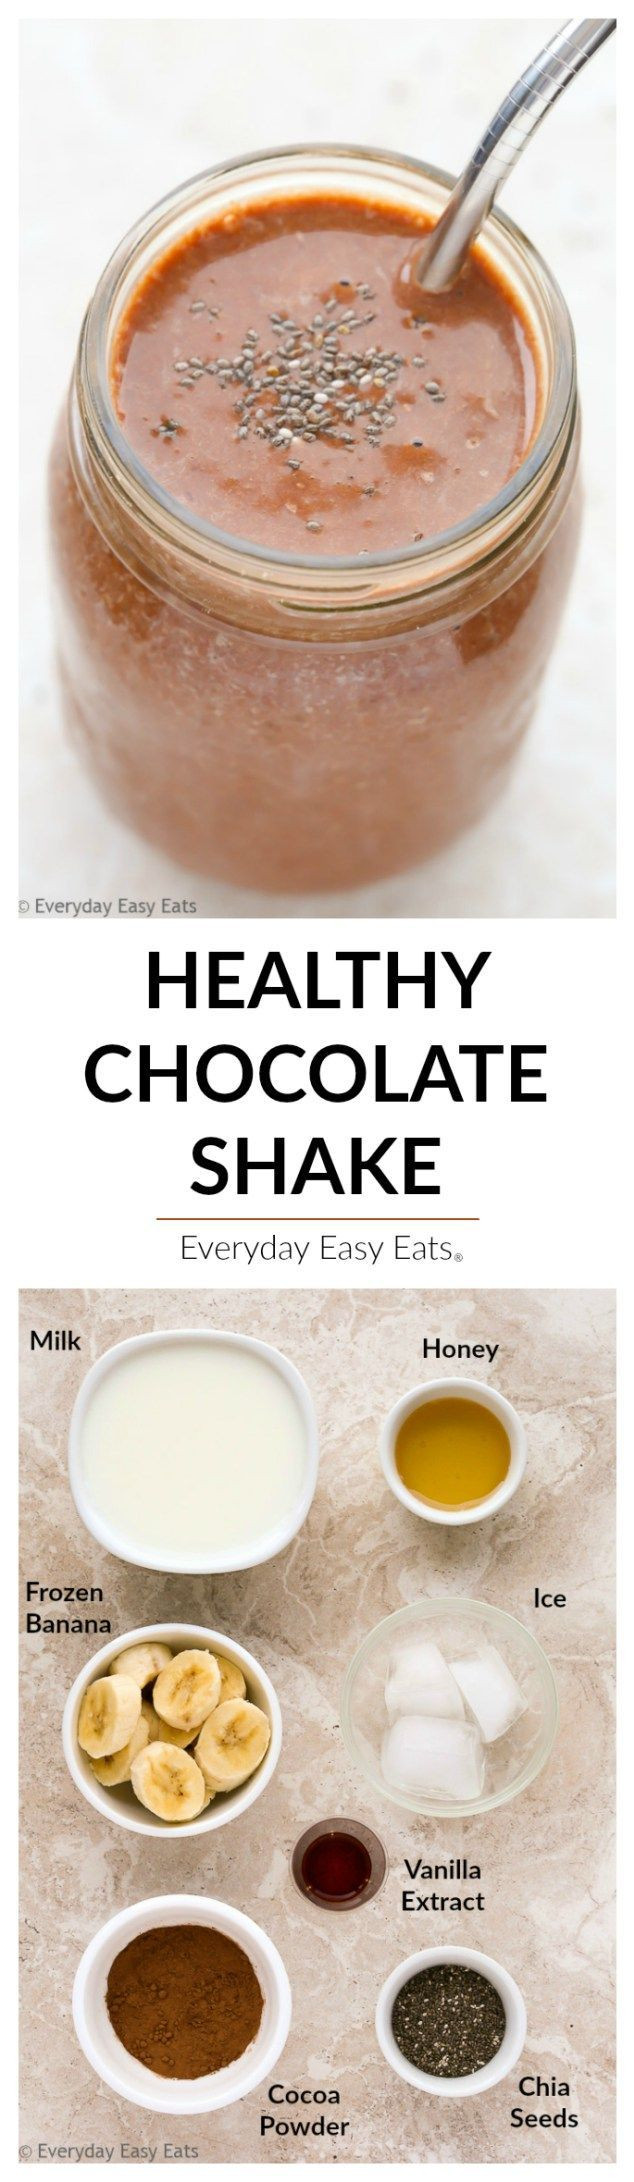 Healthy Cocoa Powder Recipes  Best 25 Healthy chocolate shakes ideas on Pinterest